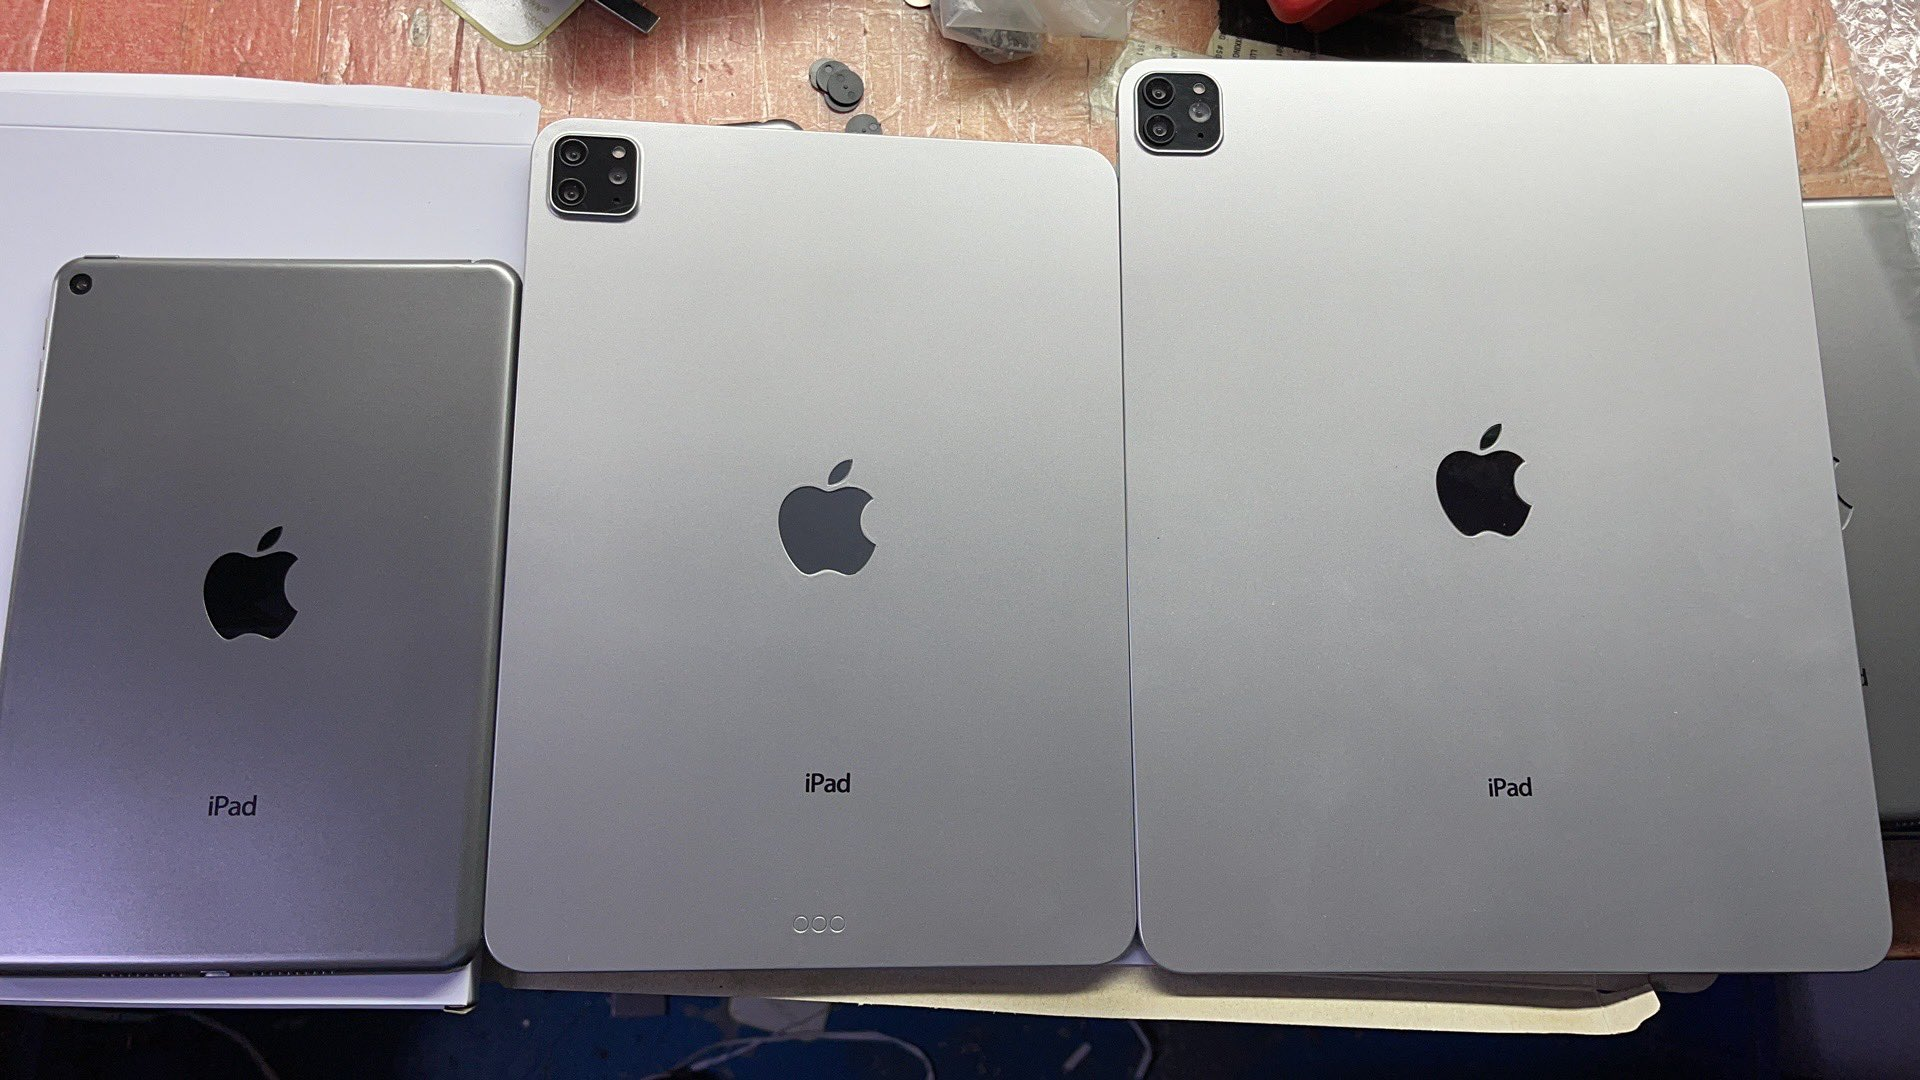 Leaked Dummy Units Show iPad Mini 6 With Thick Bezels and Home Button, New iPad Pro Models